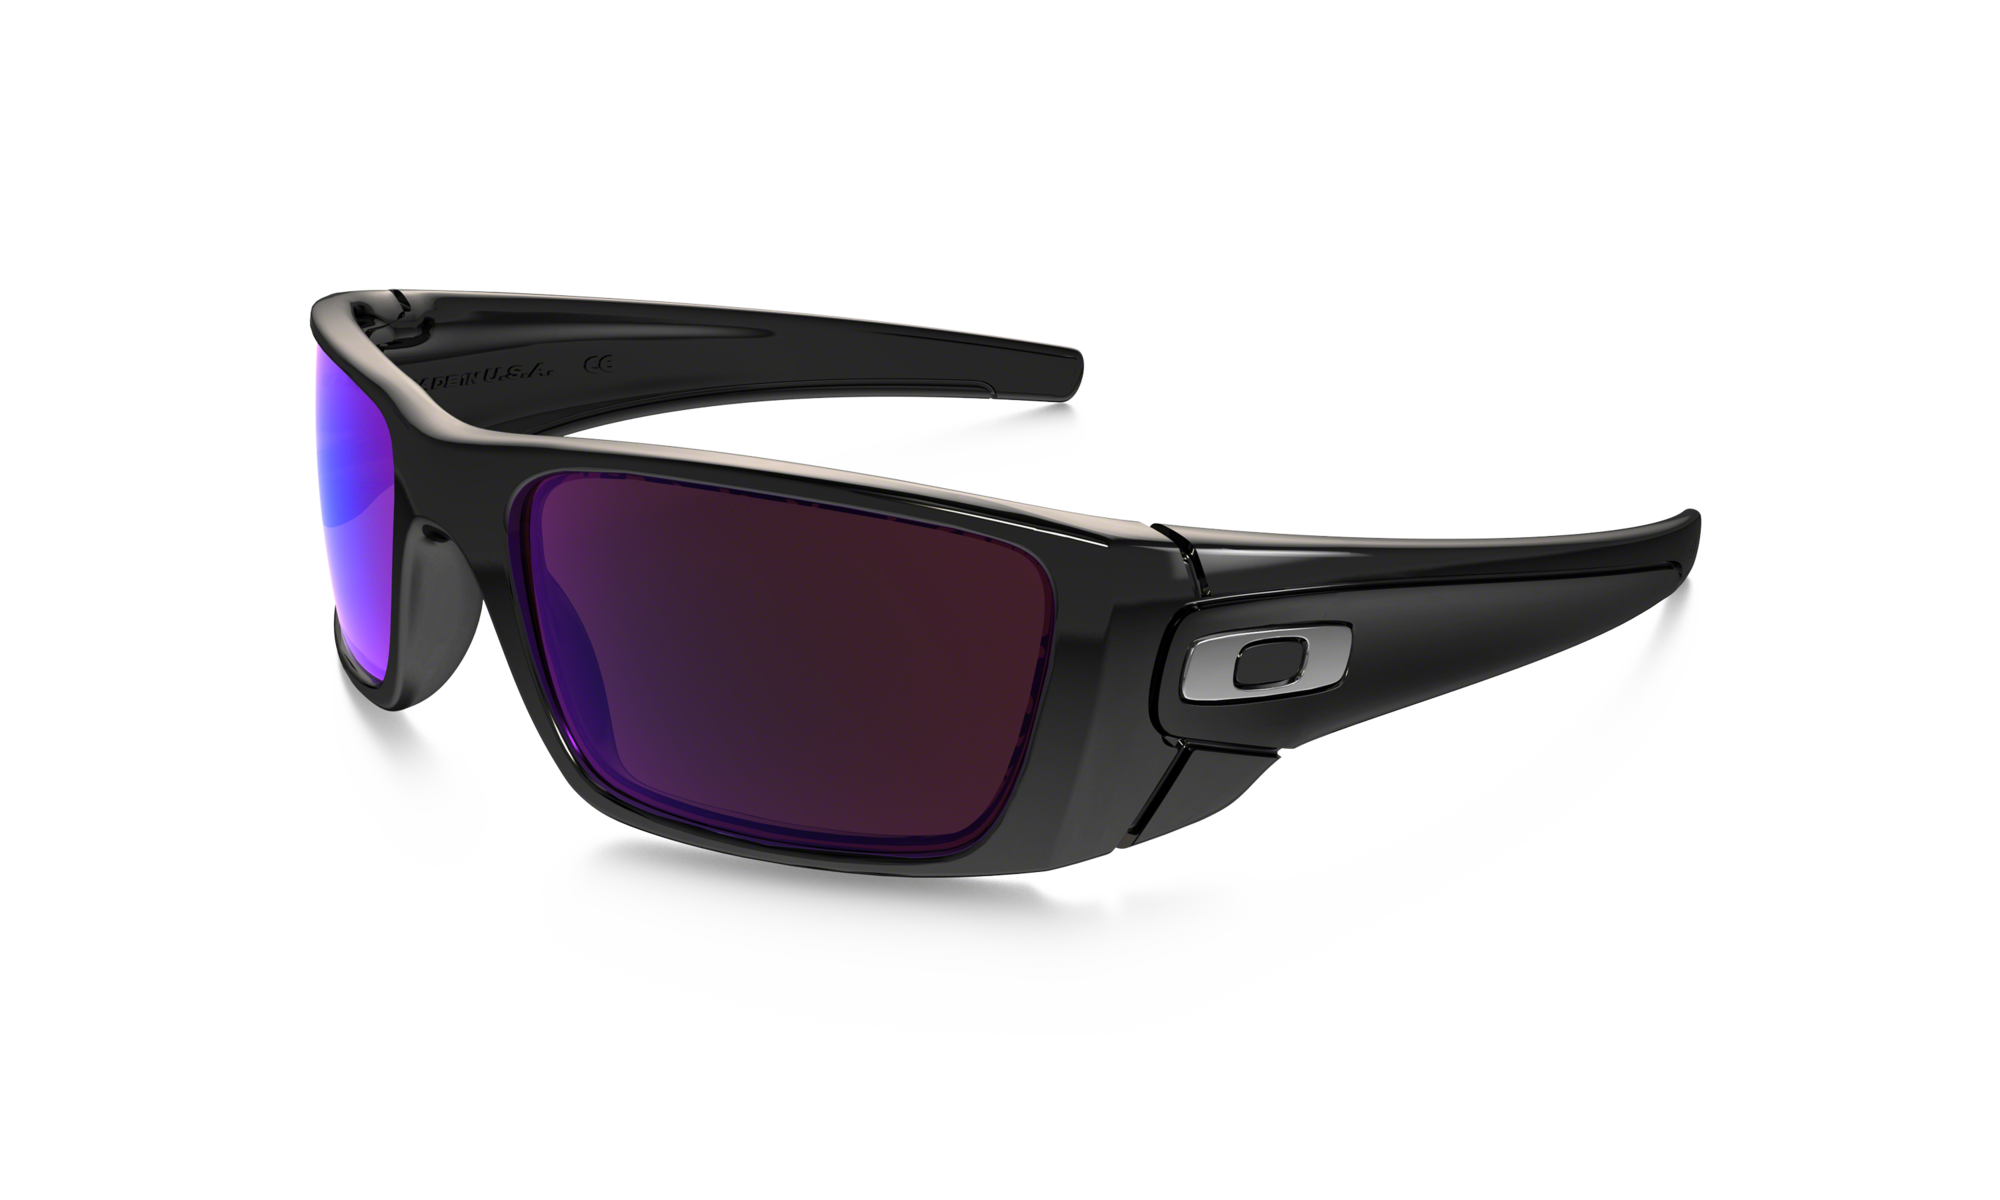 Discount coupon for oakley sunglasses